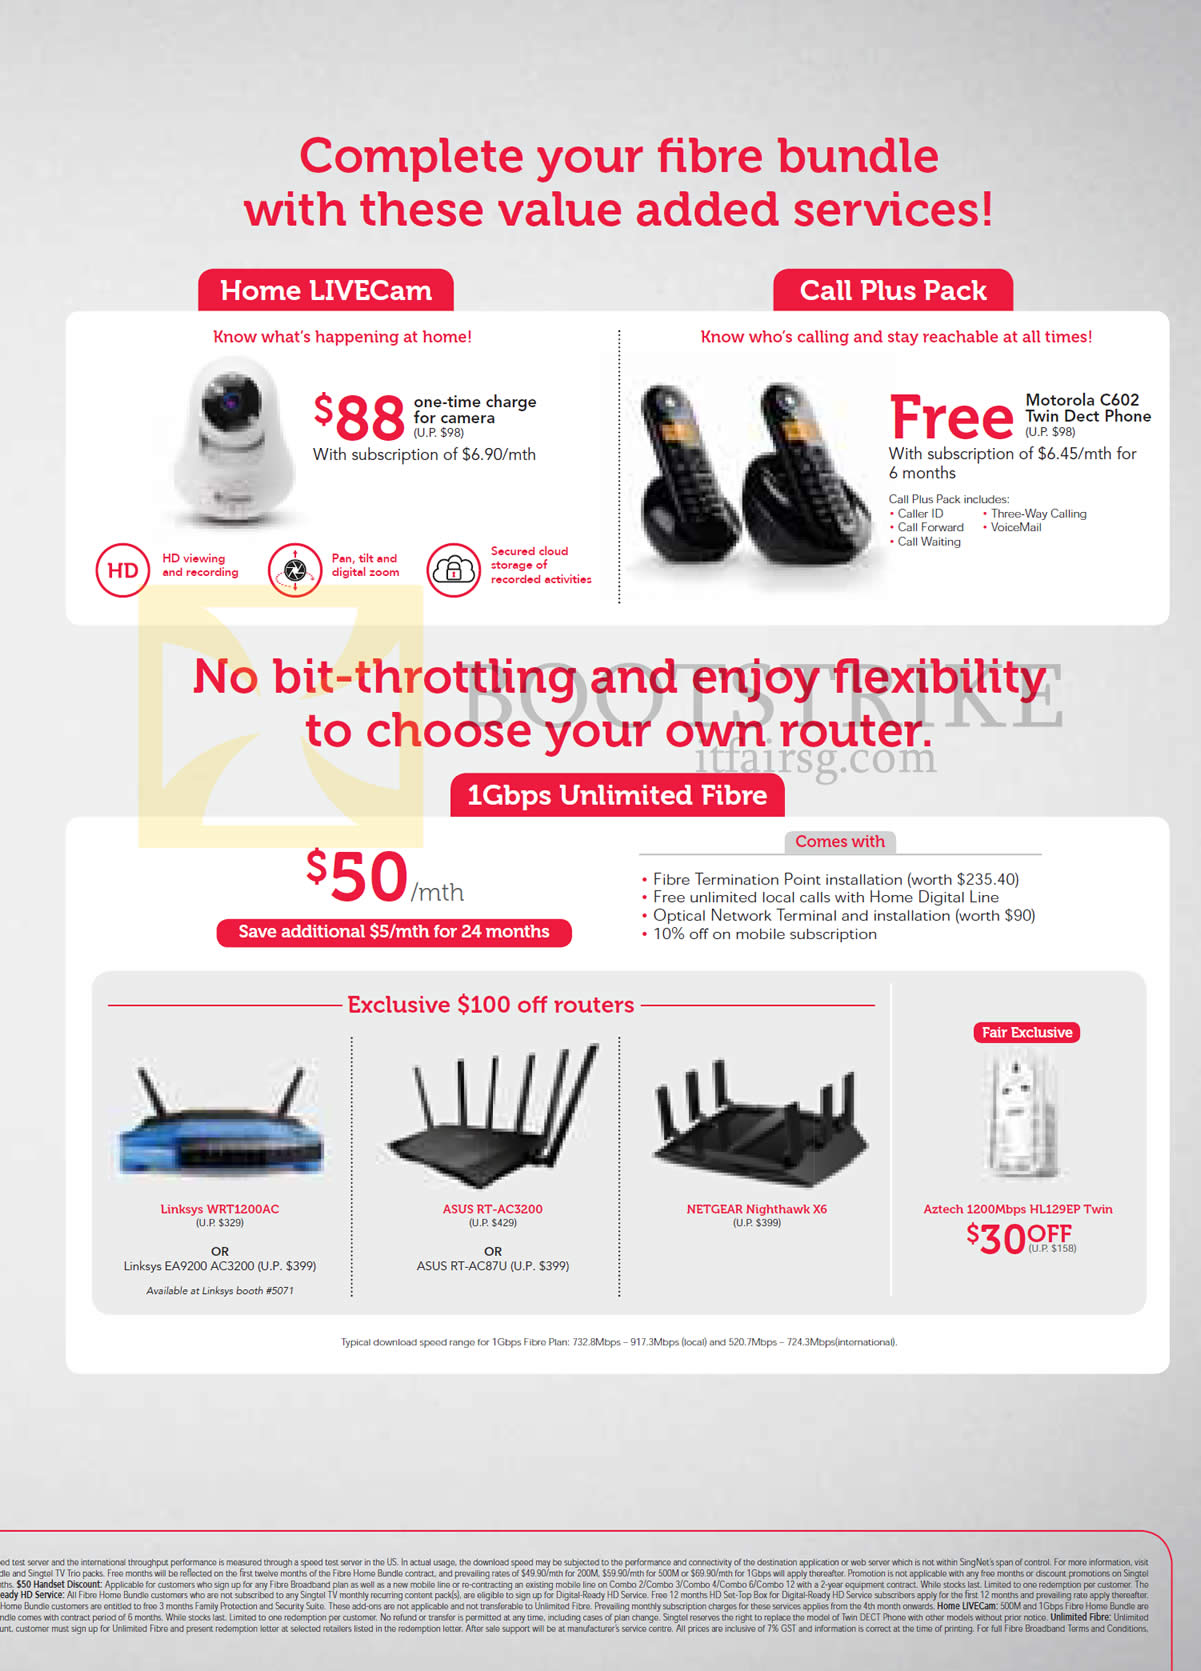 PC SHOW 2015 price list image brochure of Singtel 1Gbps Unlimited Fibre 50.00, Routers, Fibre Addons Home Livecam, Call Plus Pack